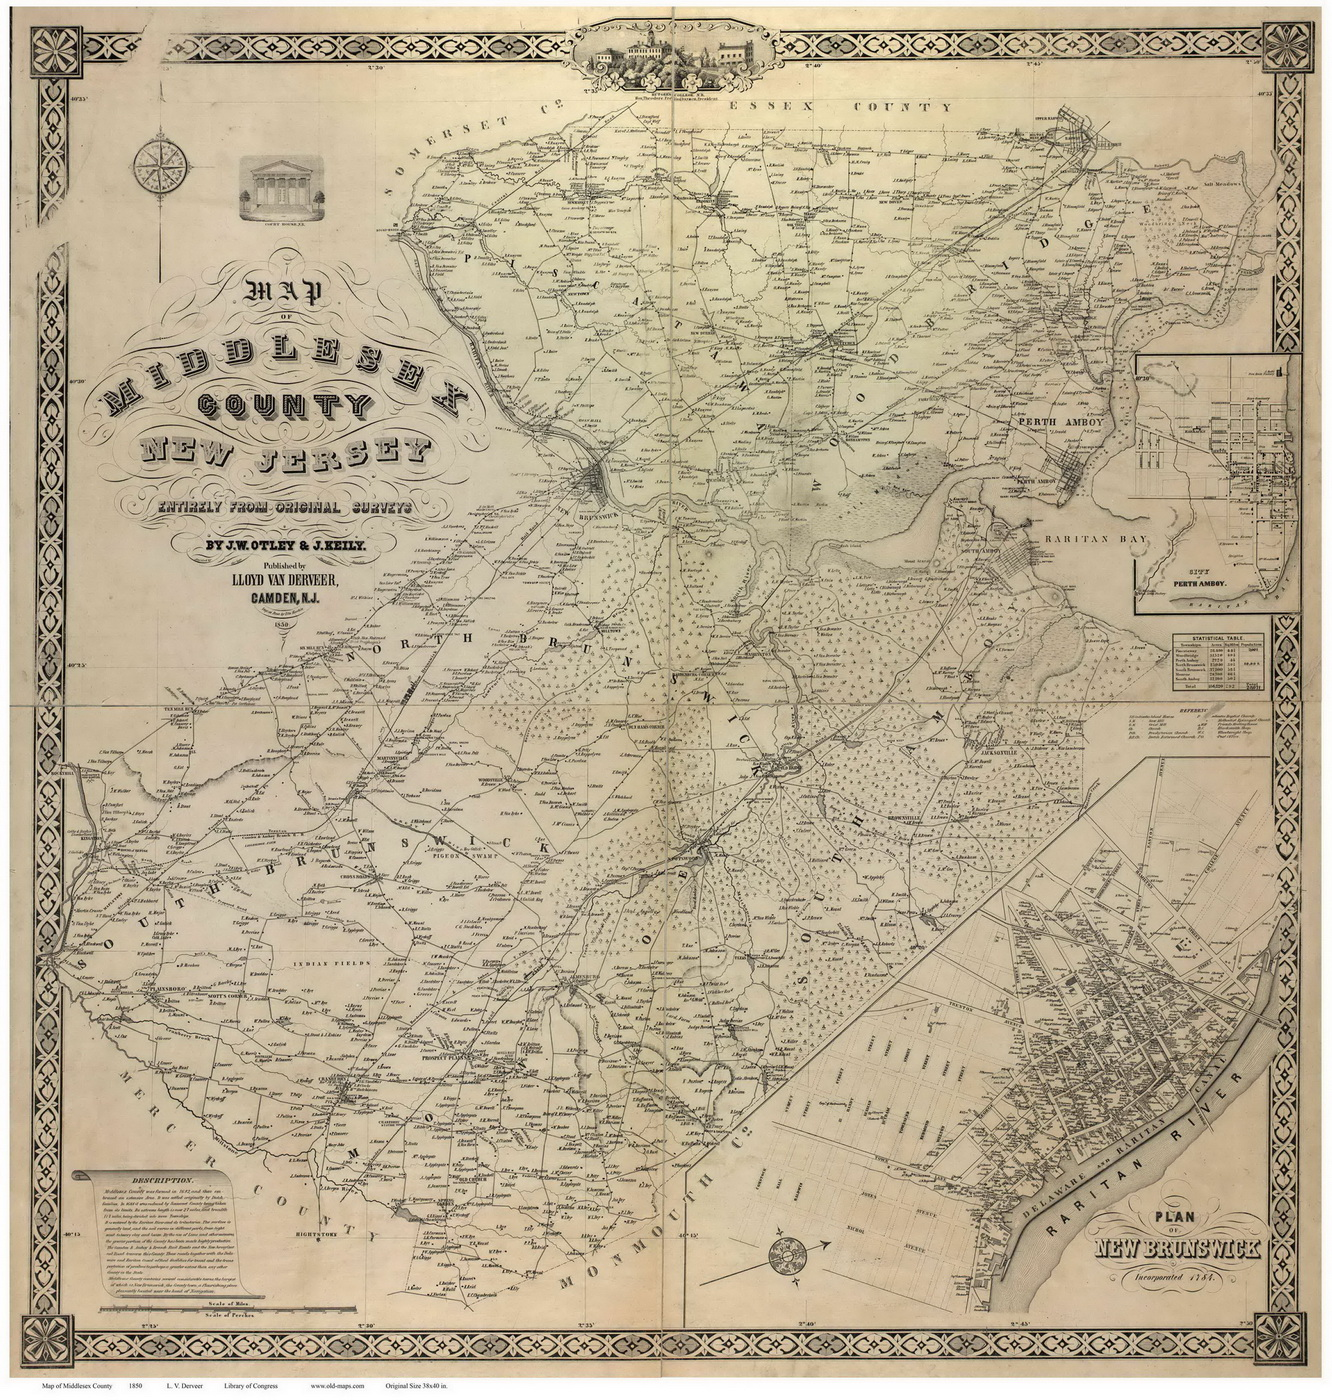 New Jersey County Maps - Maps of nj